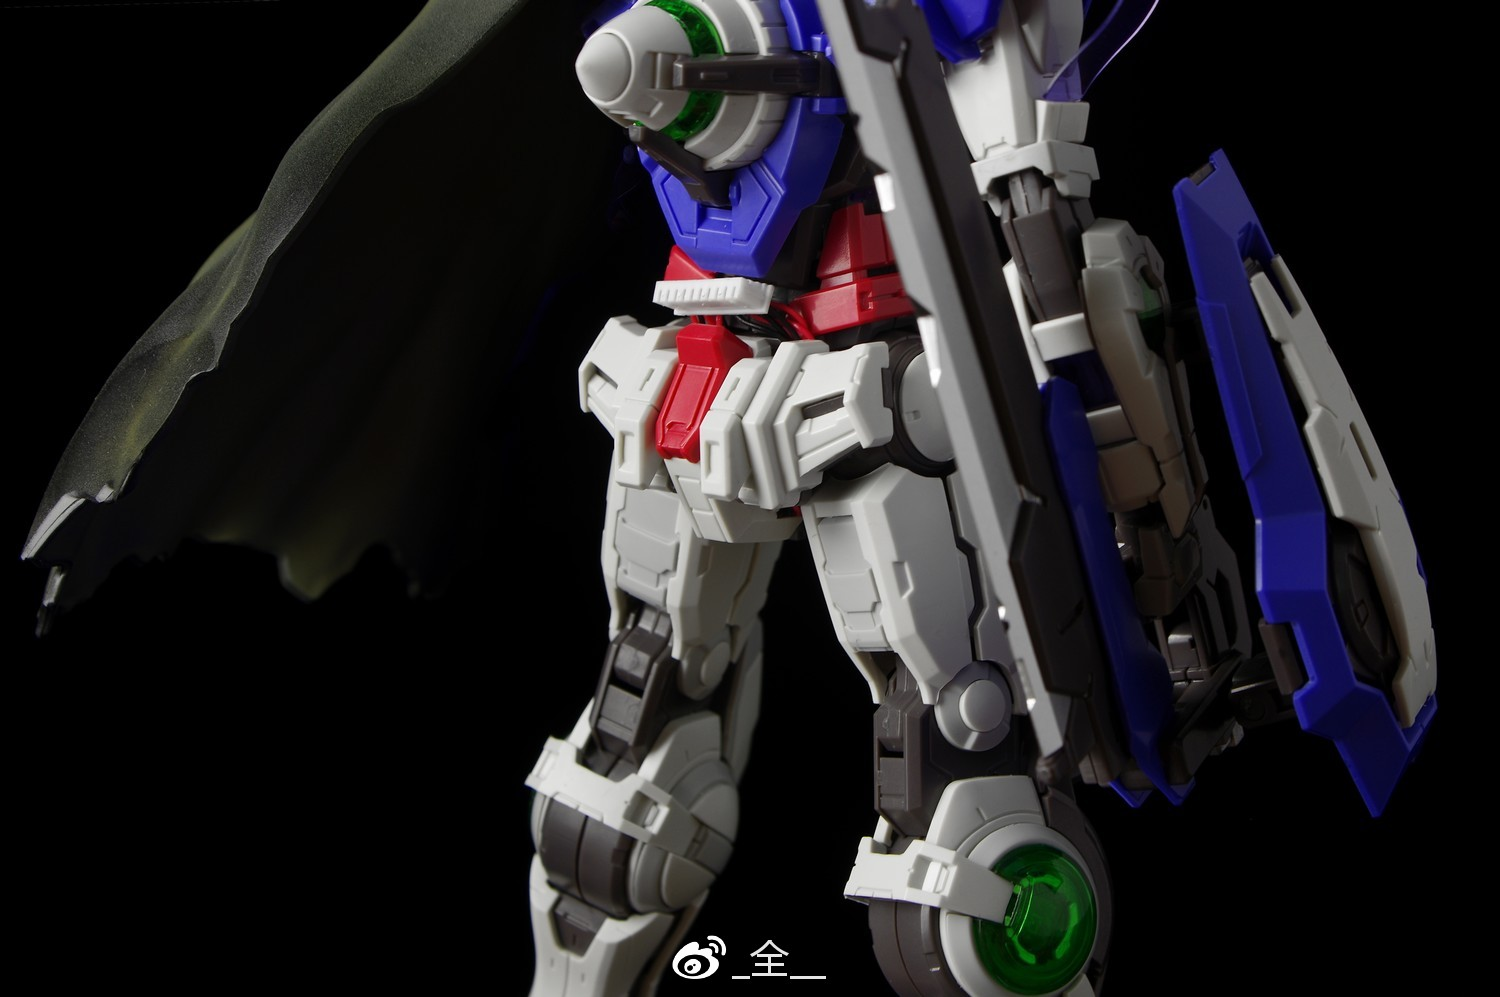 S269_mg_exia_led_hobby_star_inask_080.jpg